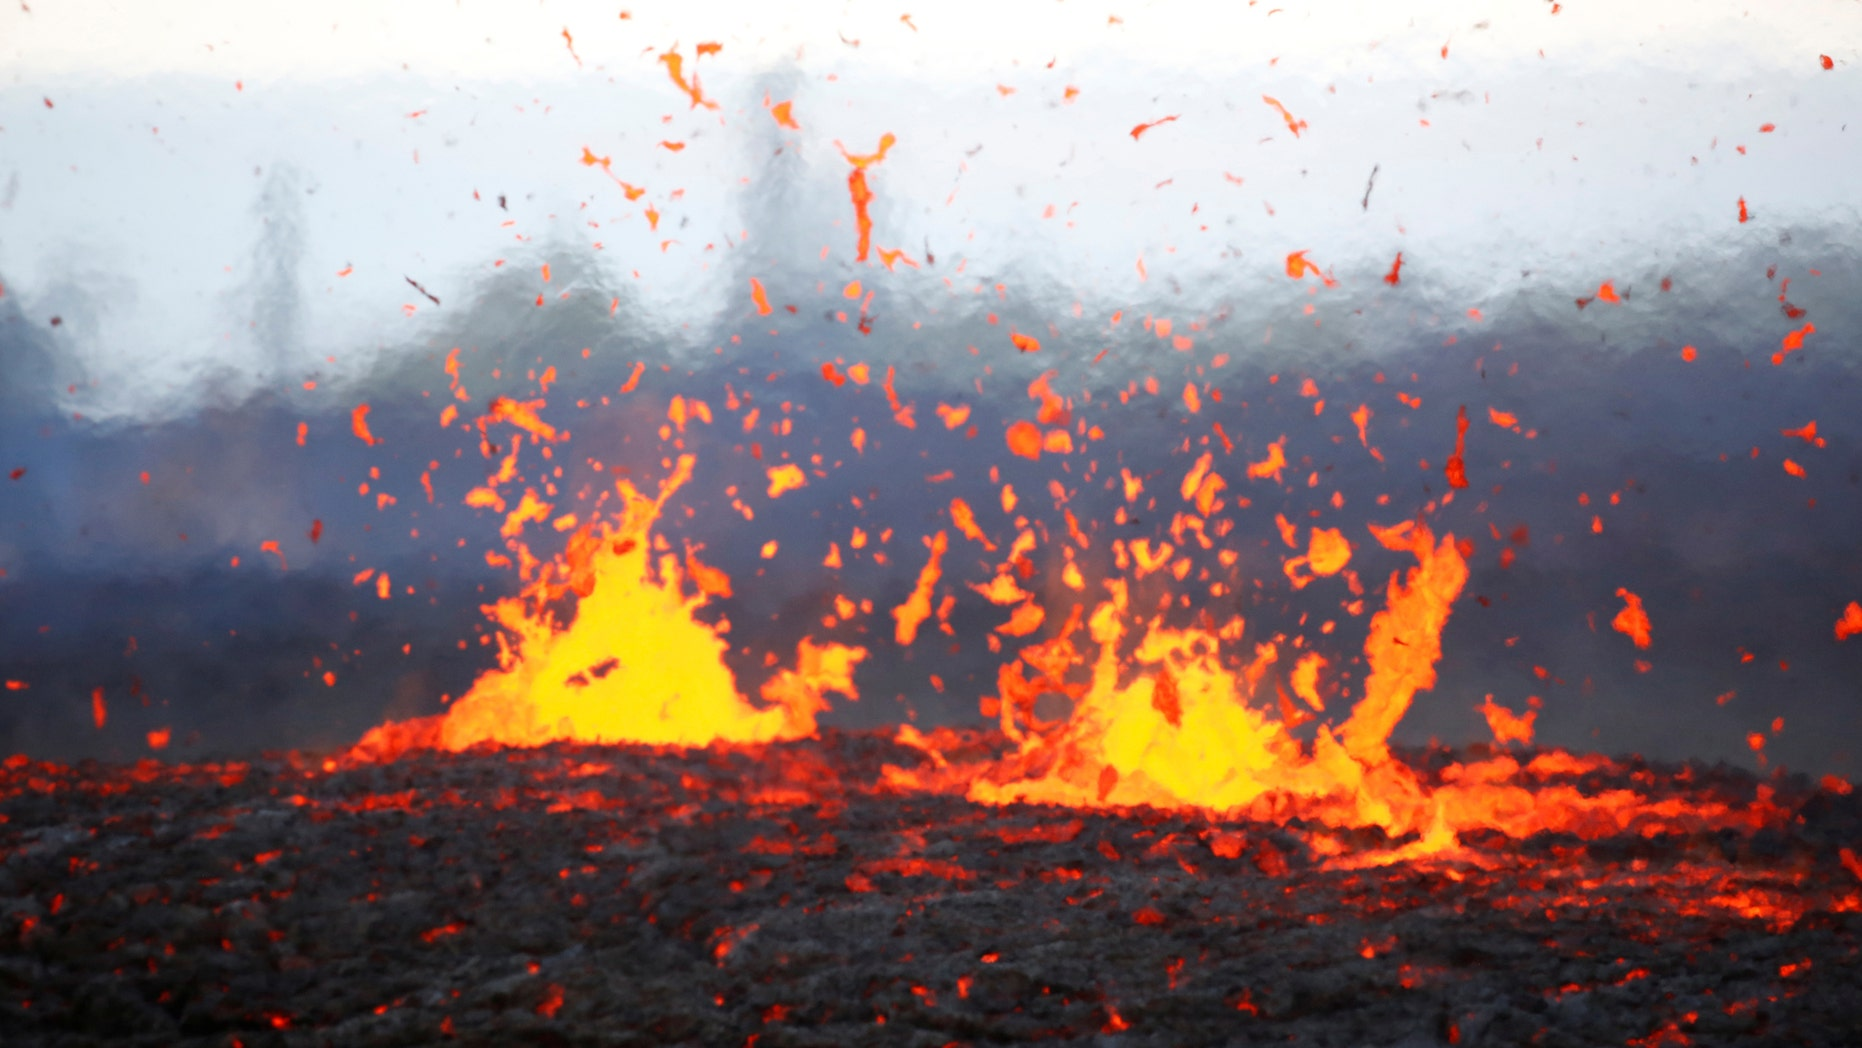 Lava erupts from a fissure on the outskirts of Pahoa during ongoing eruptions of the Kilauea Volcano in Hawaii, U.S., May 14, 2018. REUTERS/Terray Sylvester